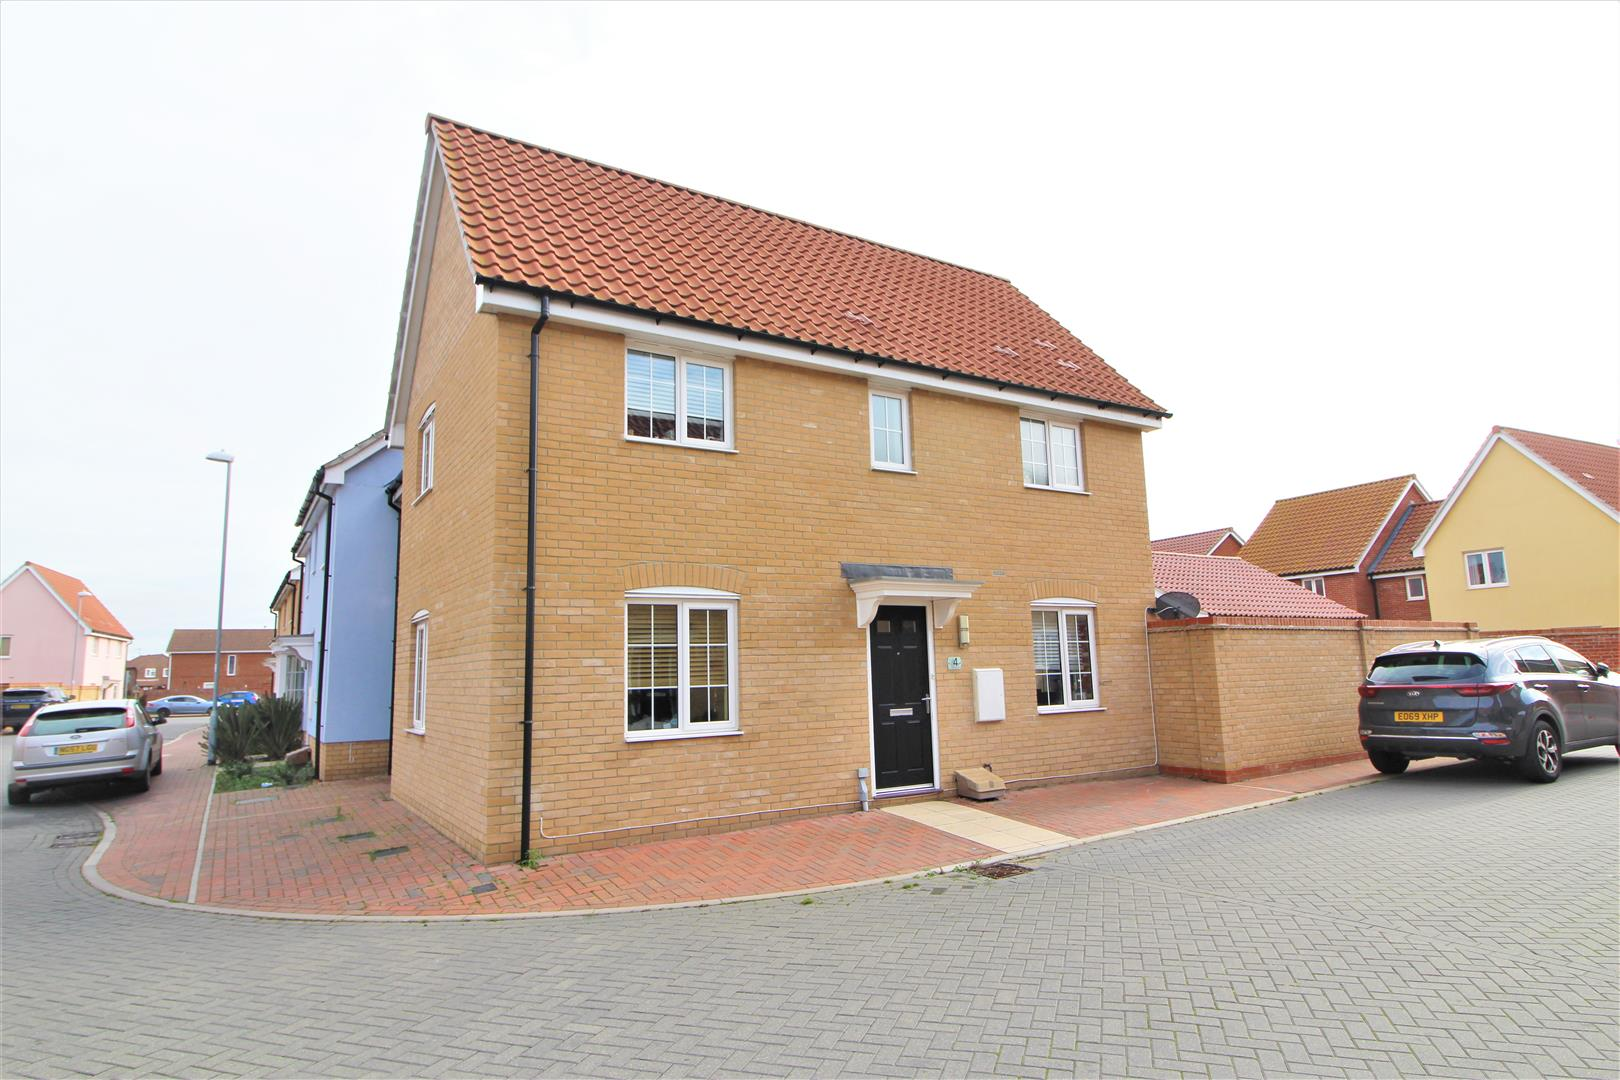 Nicholls Way, Clacton-On-Sea, , CO16 8GJ